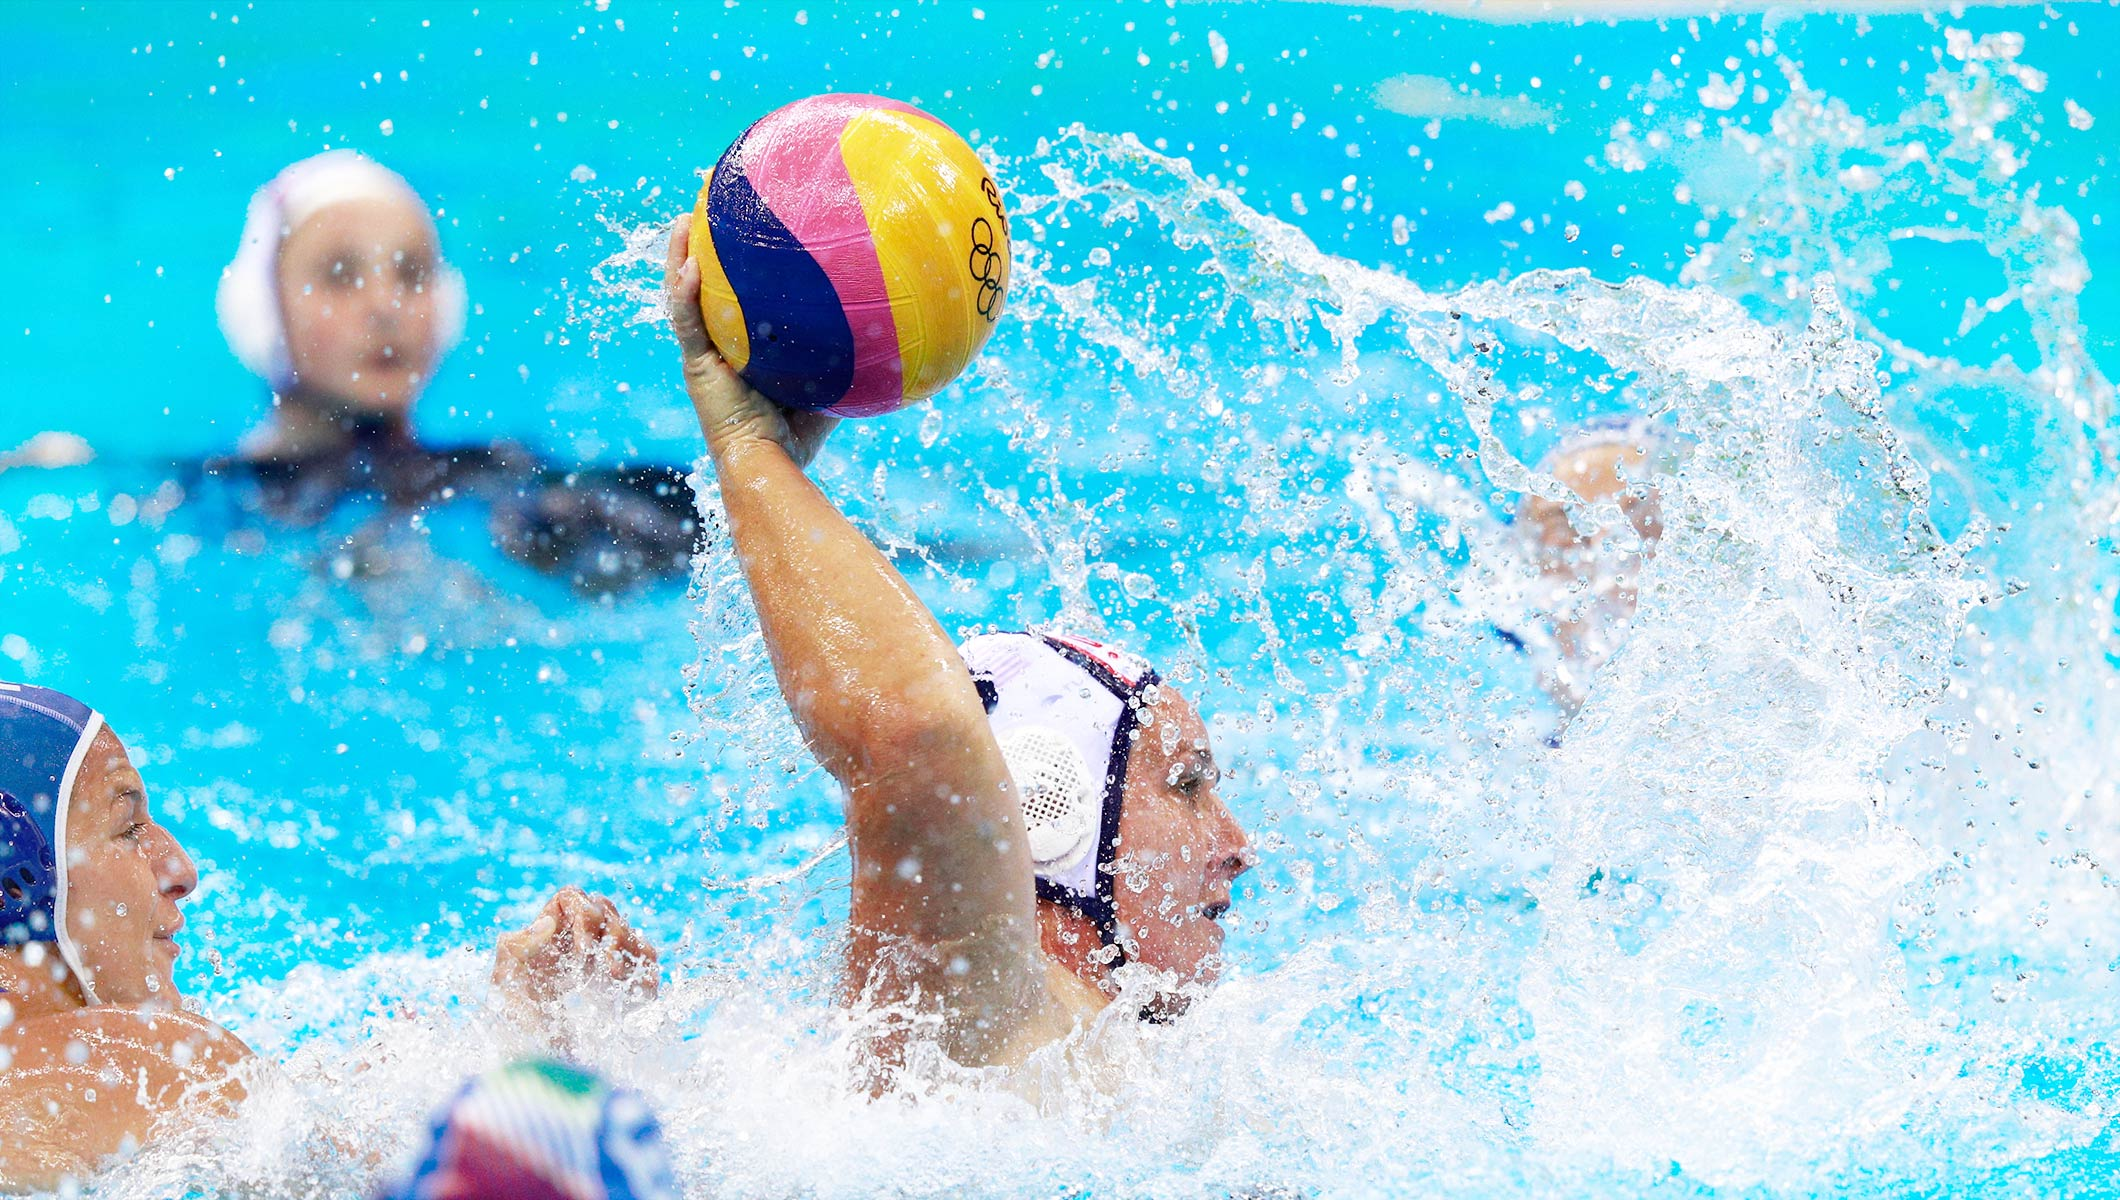 Overcoming obstacles second nature to the USA's all-conquering water polo star Seidemann - Olympic News